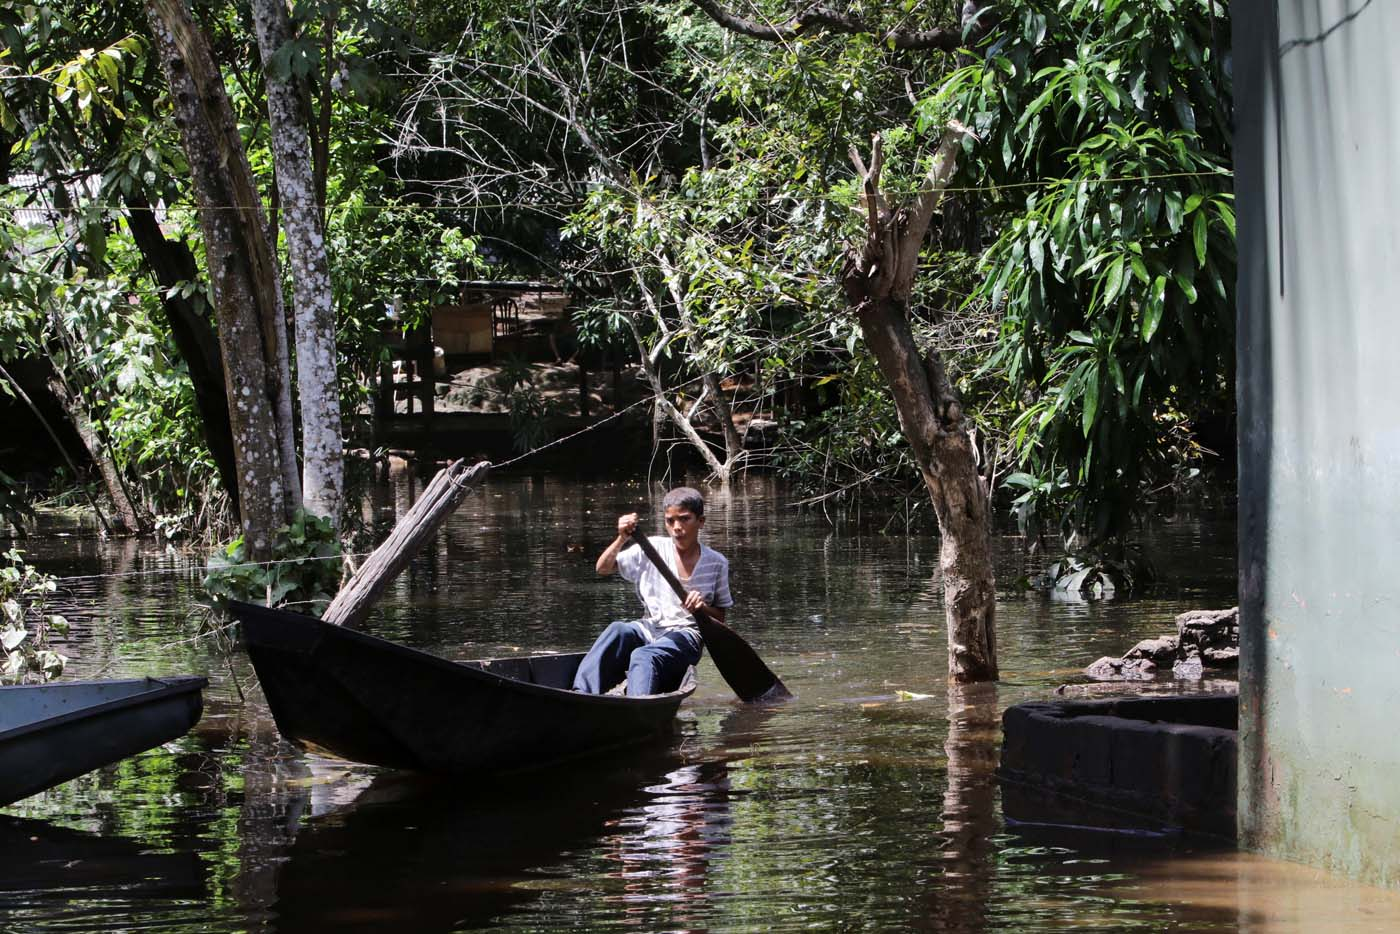 A boy uses a boat to cross through a flooded street in San Felix, Venezuela, August 8, 2017. Picture taken August 8, 2017. REUTERS/William Urdaneta